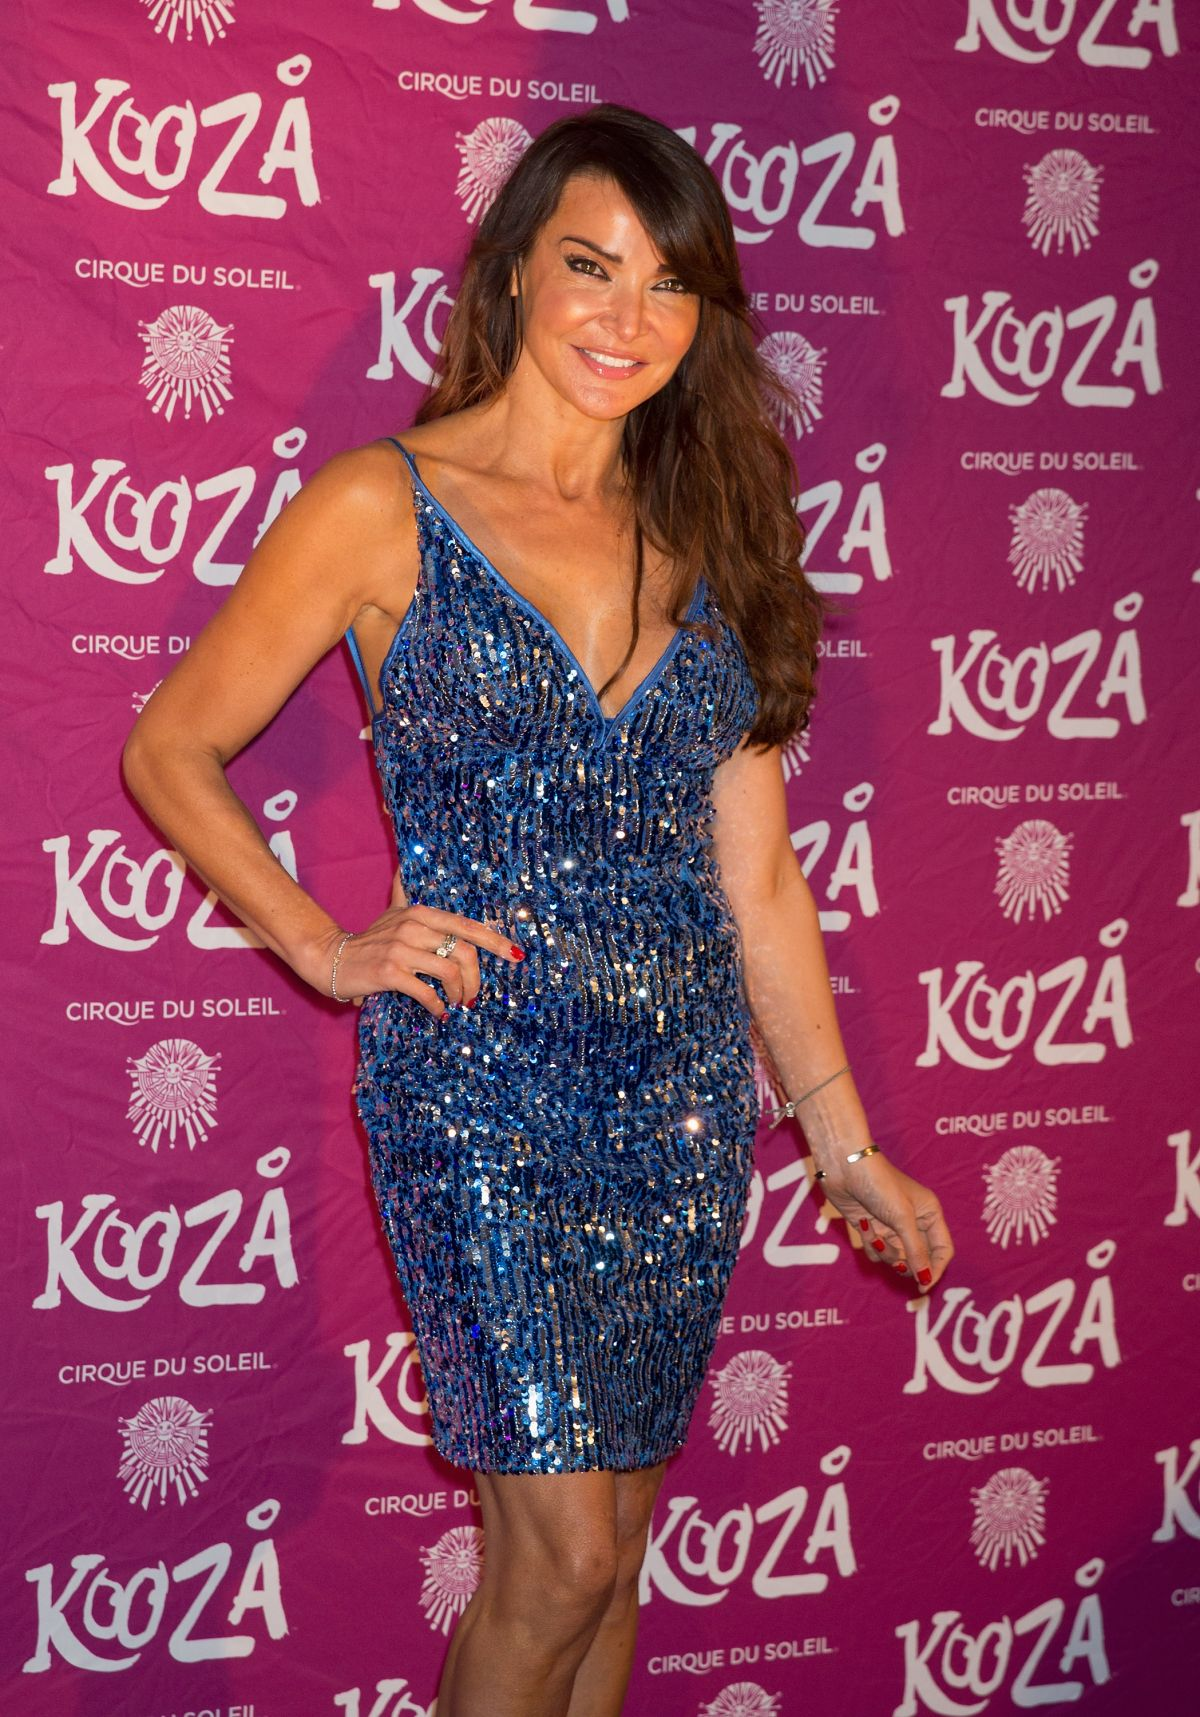 LIZZIE CUNDY at Kooza by Cirque du Soleil VIP Performance in London